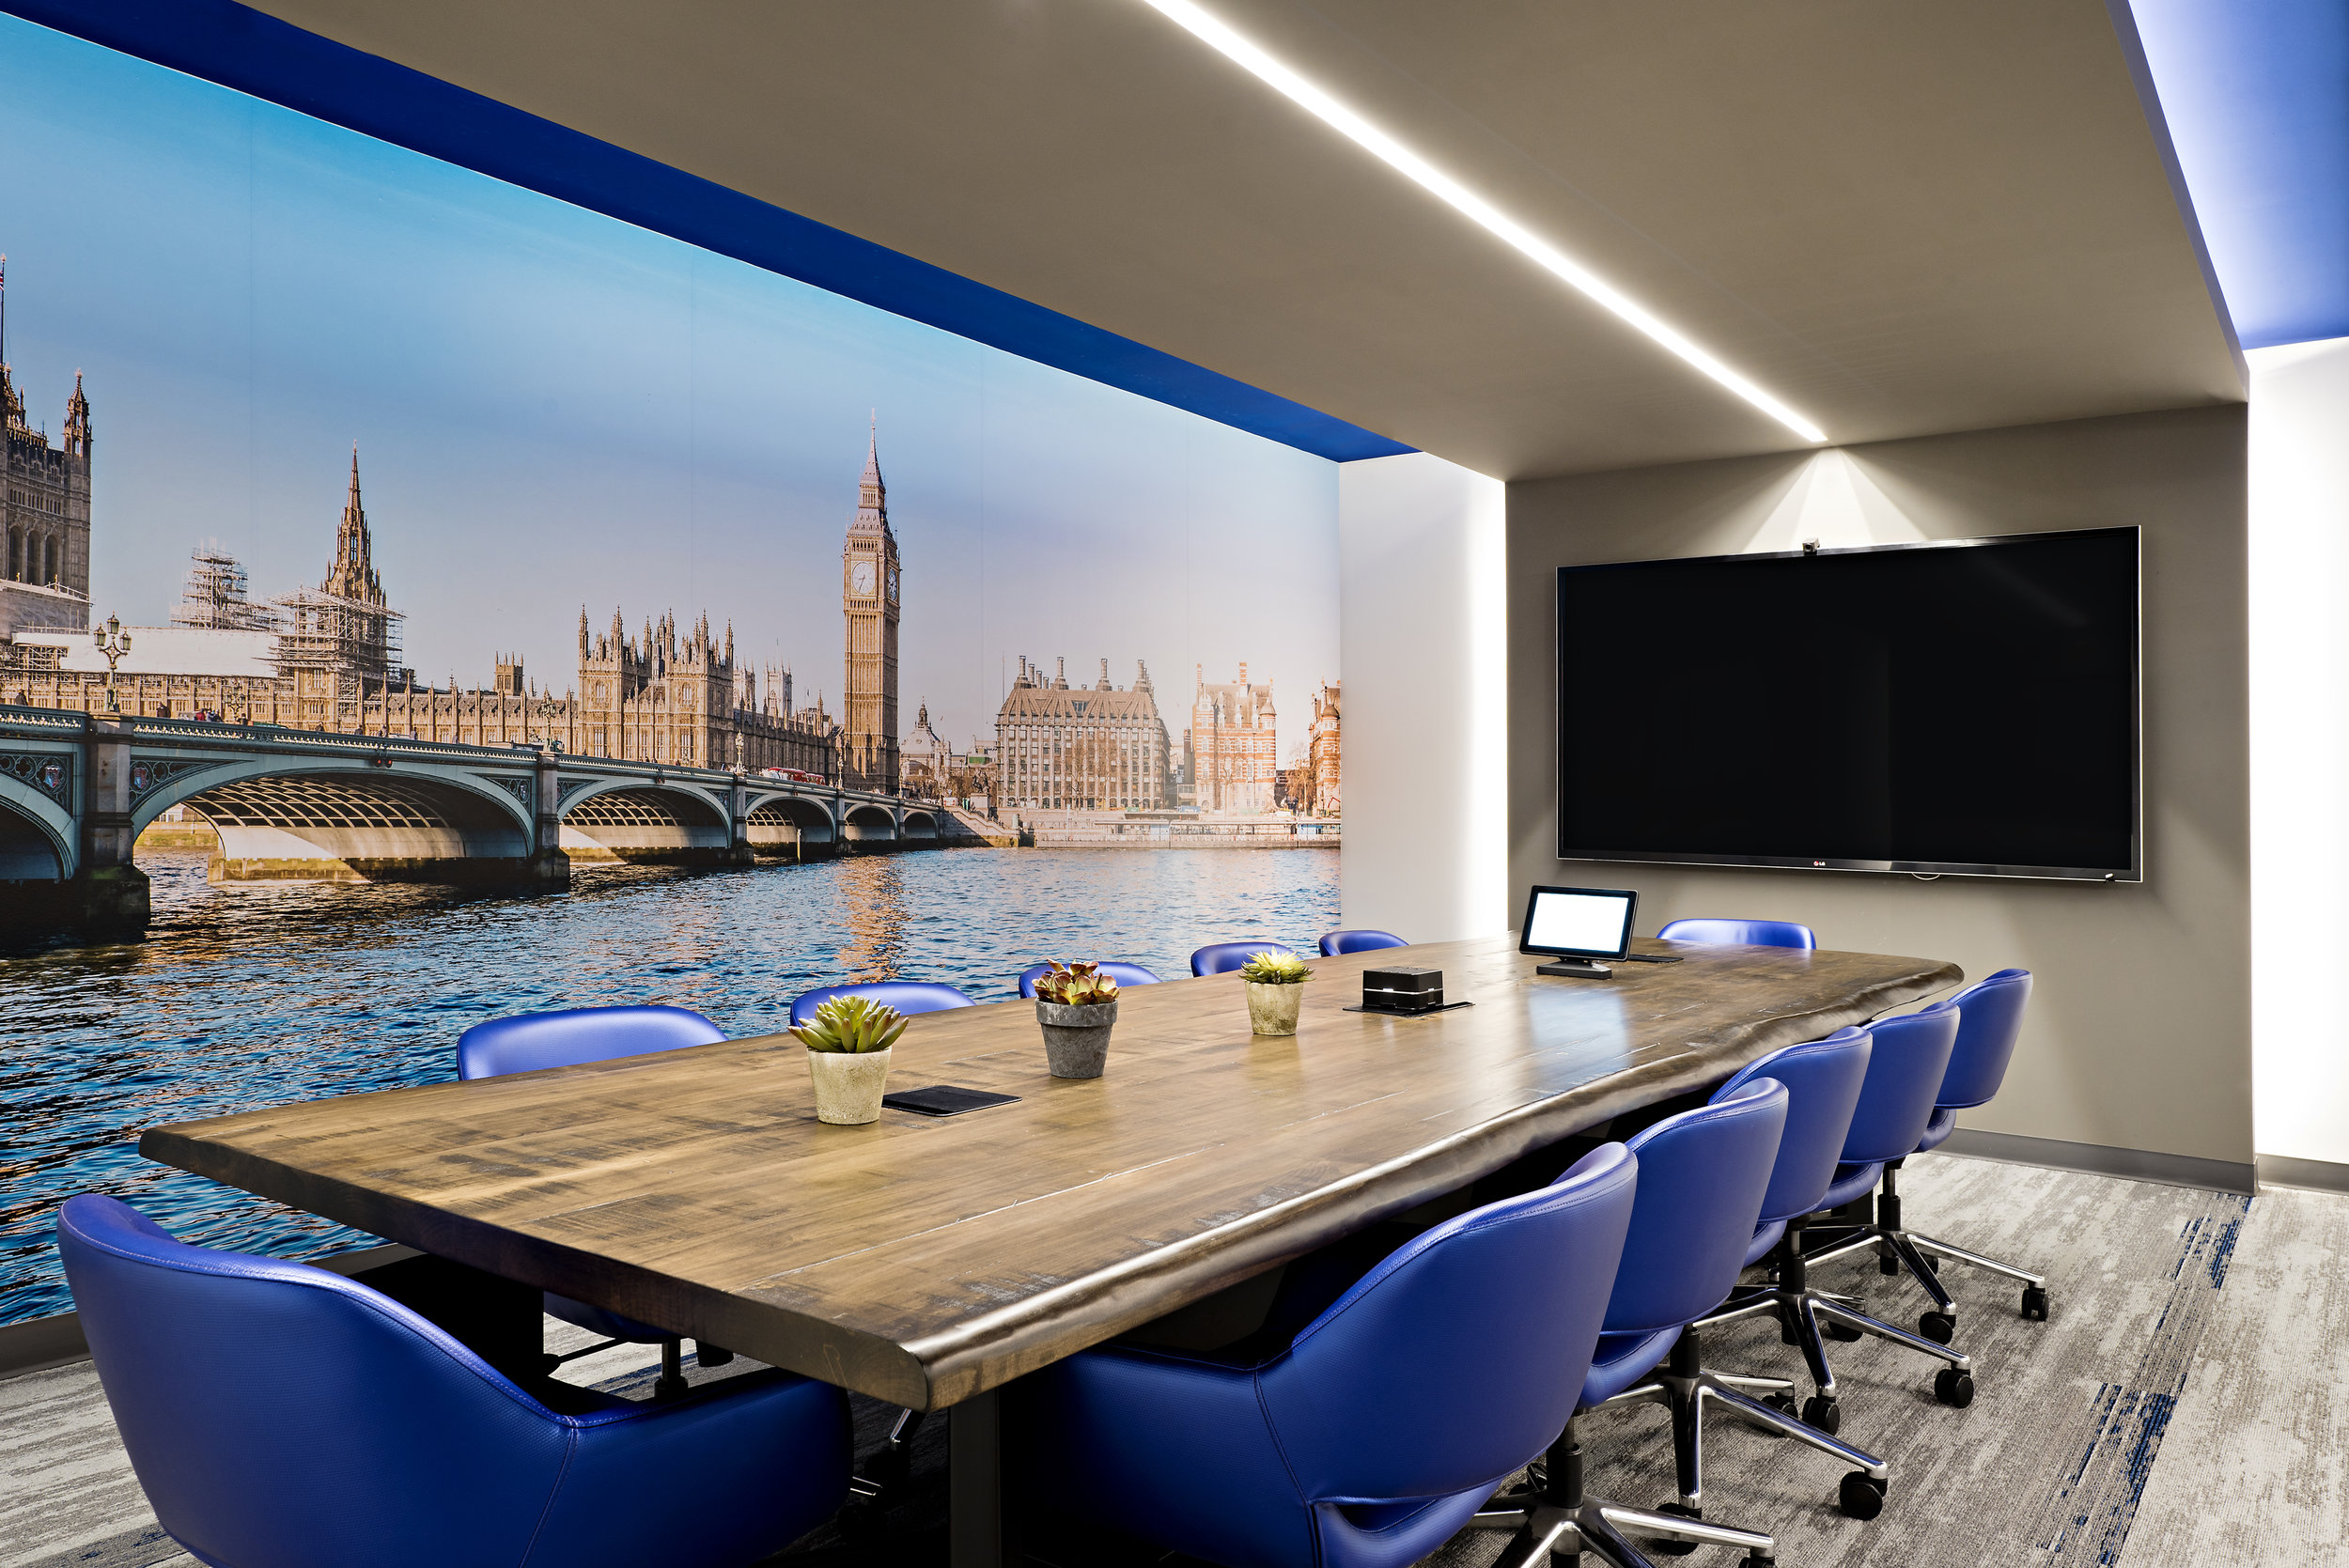 6pizzale design interior design commercial boardroom getoab office space blue live edge table wall mural led lighting modern carpet succulent.jpg